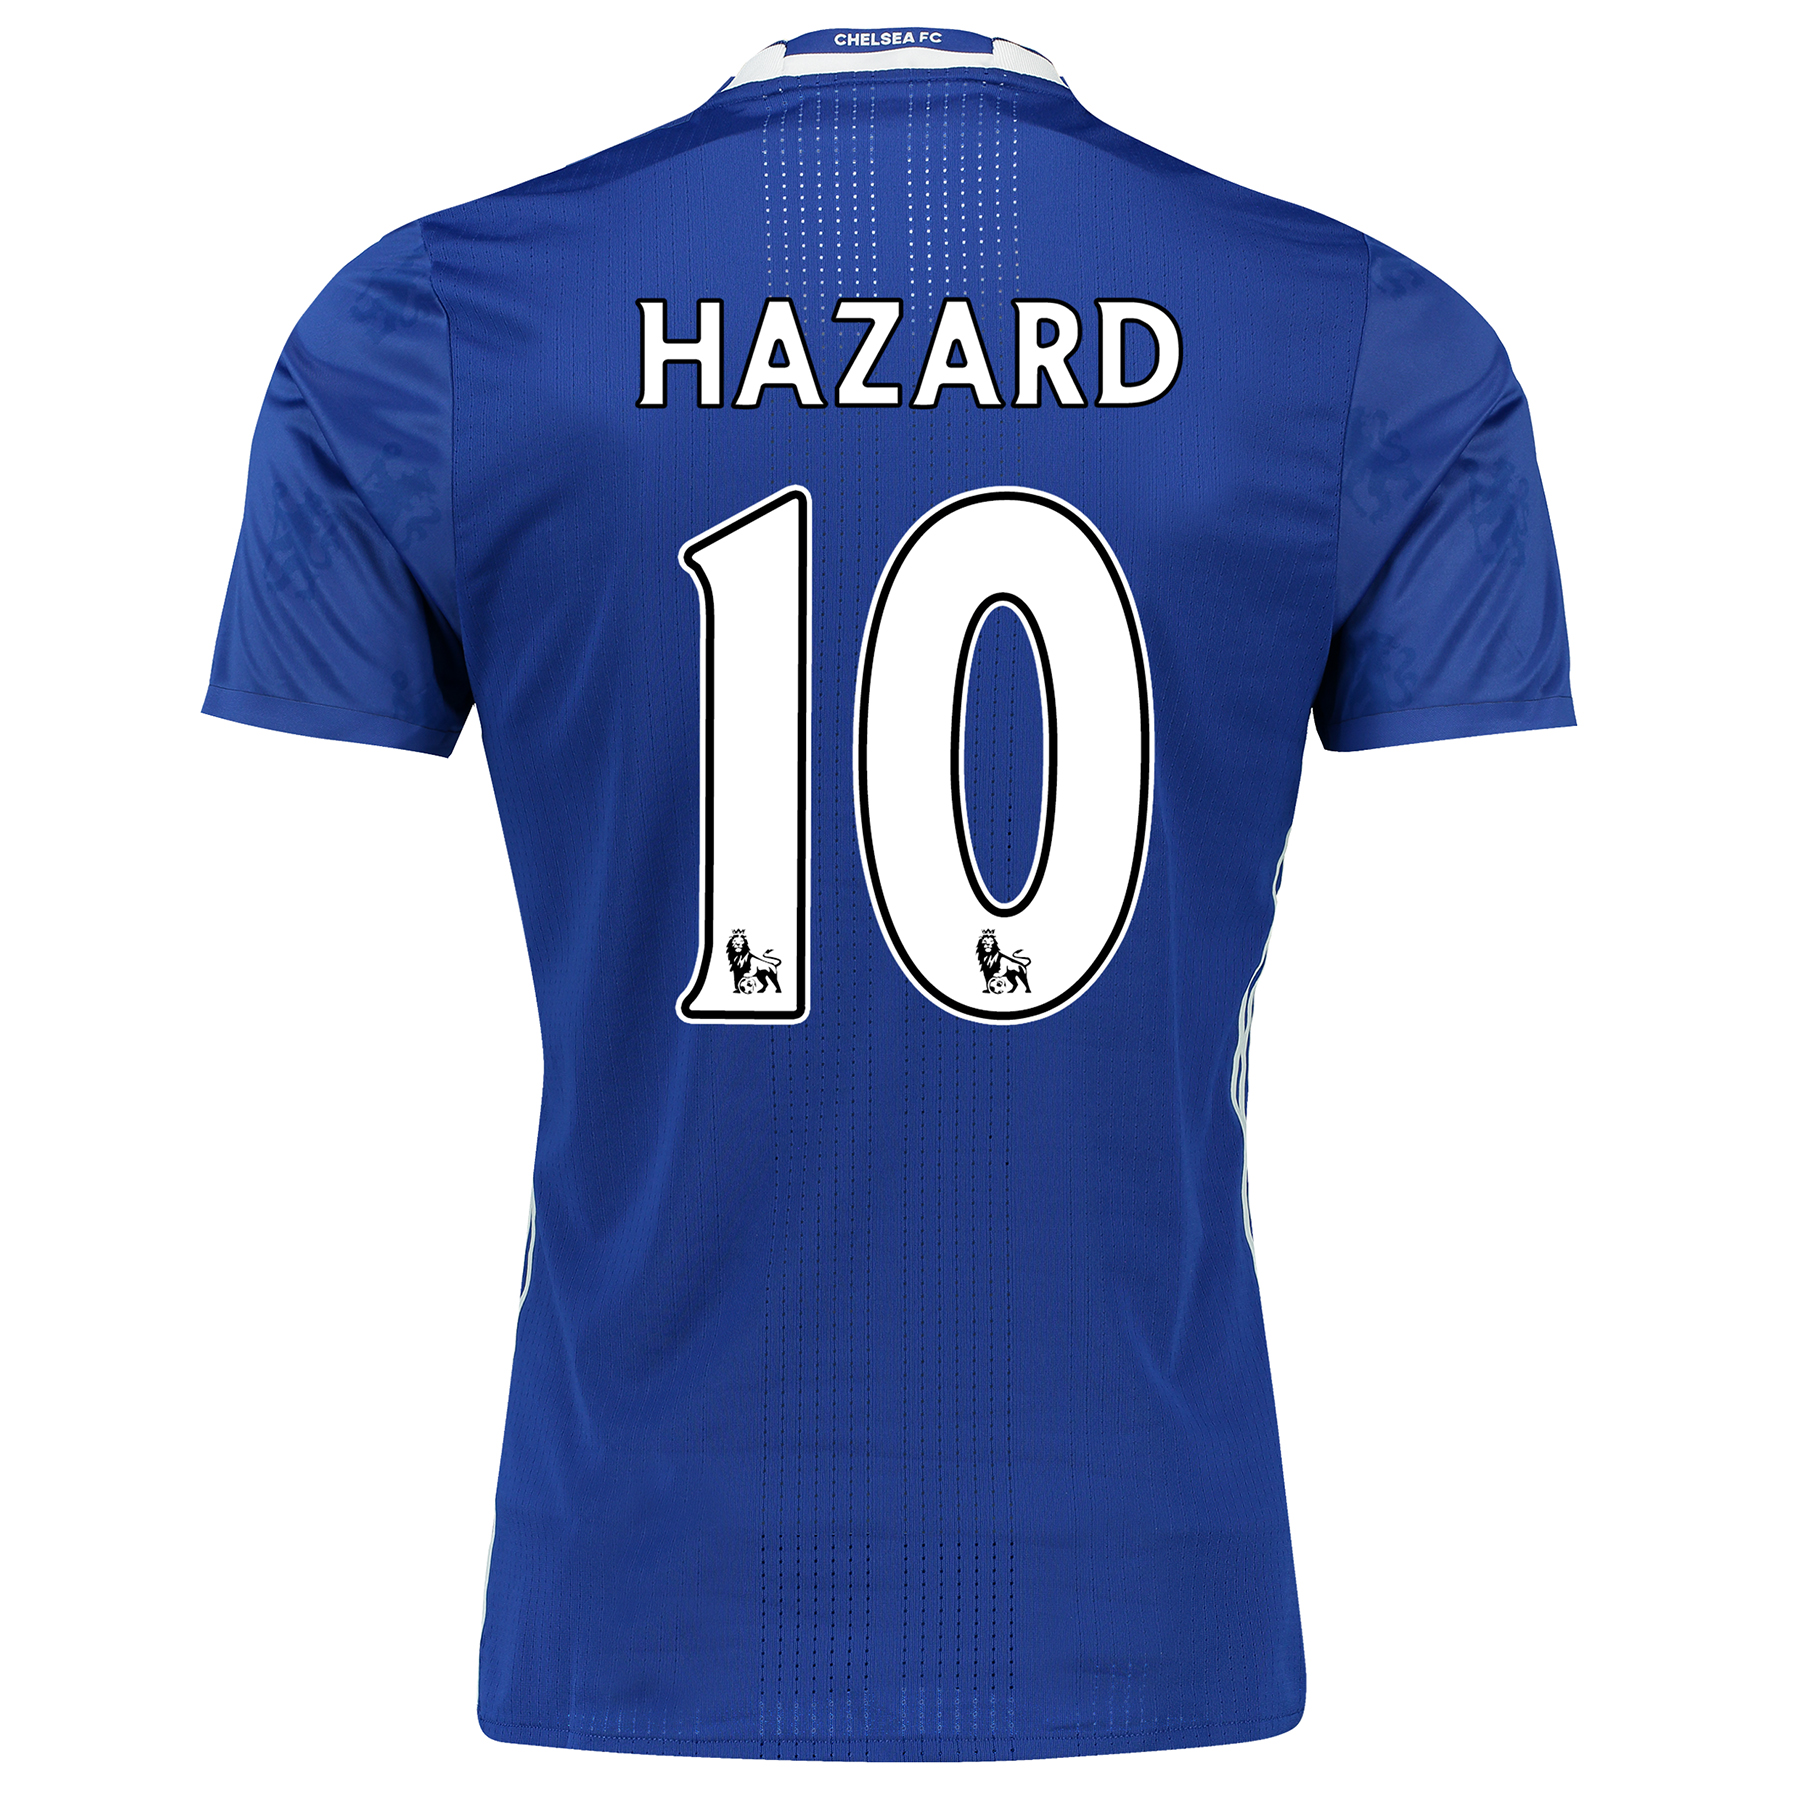 Shop Hazard Printed Shirts